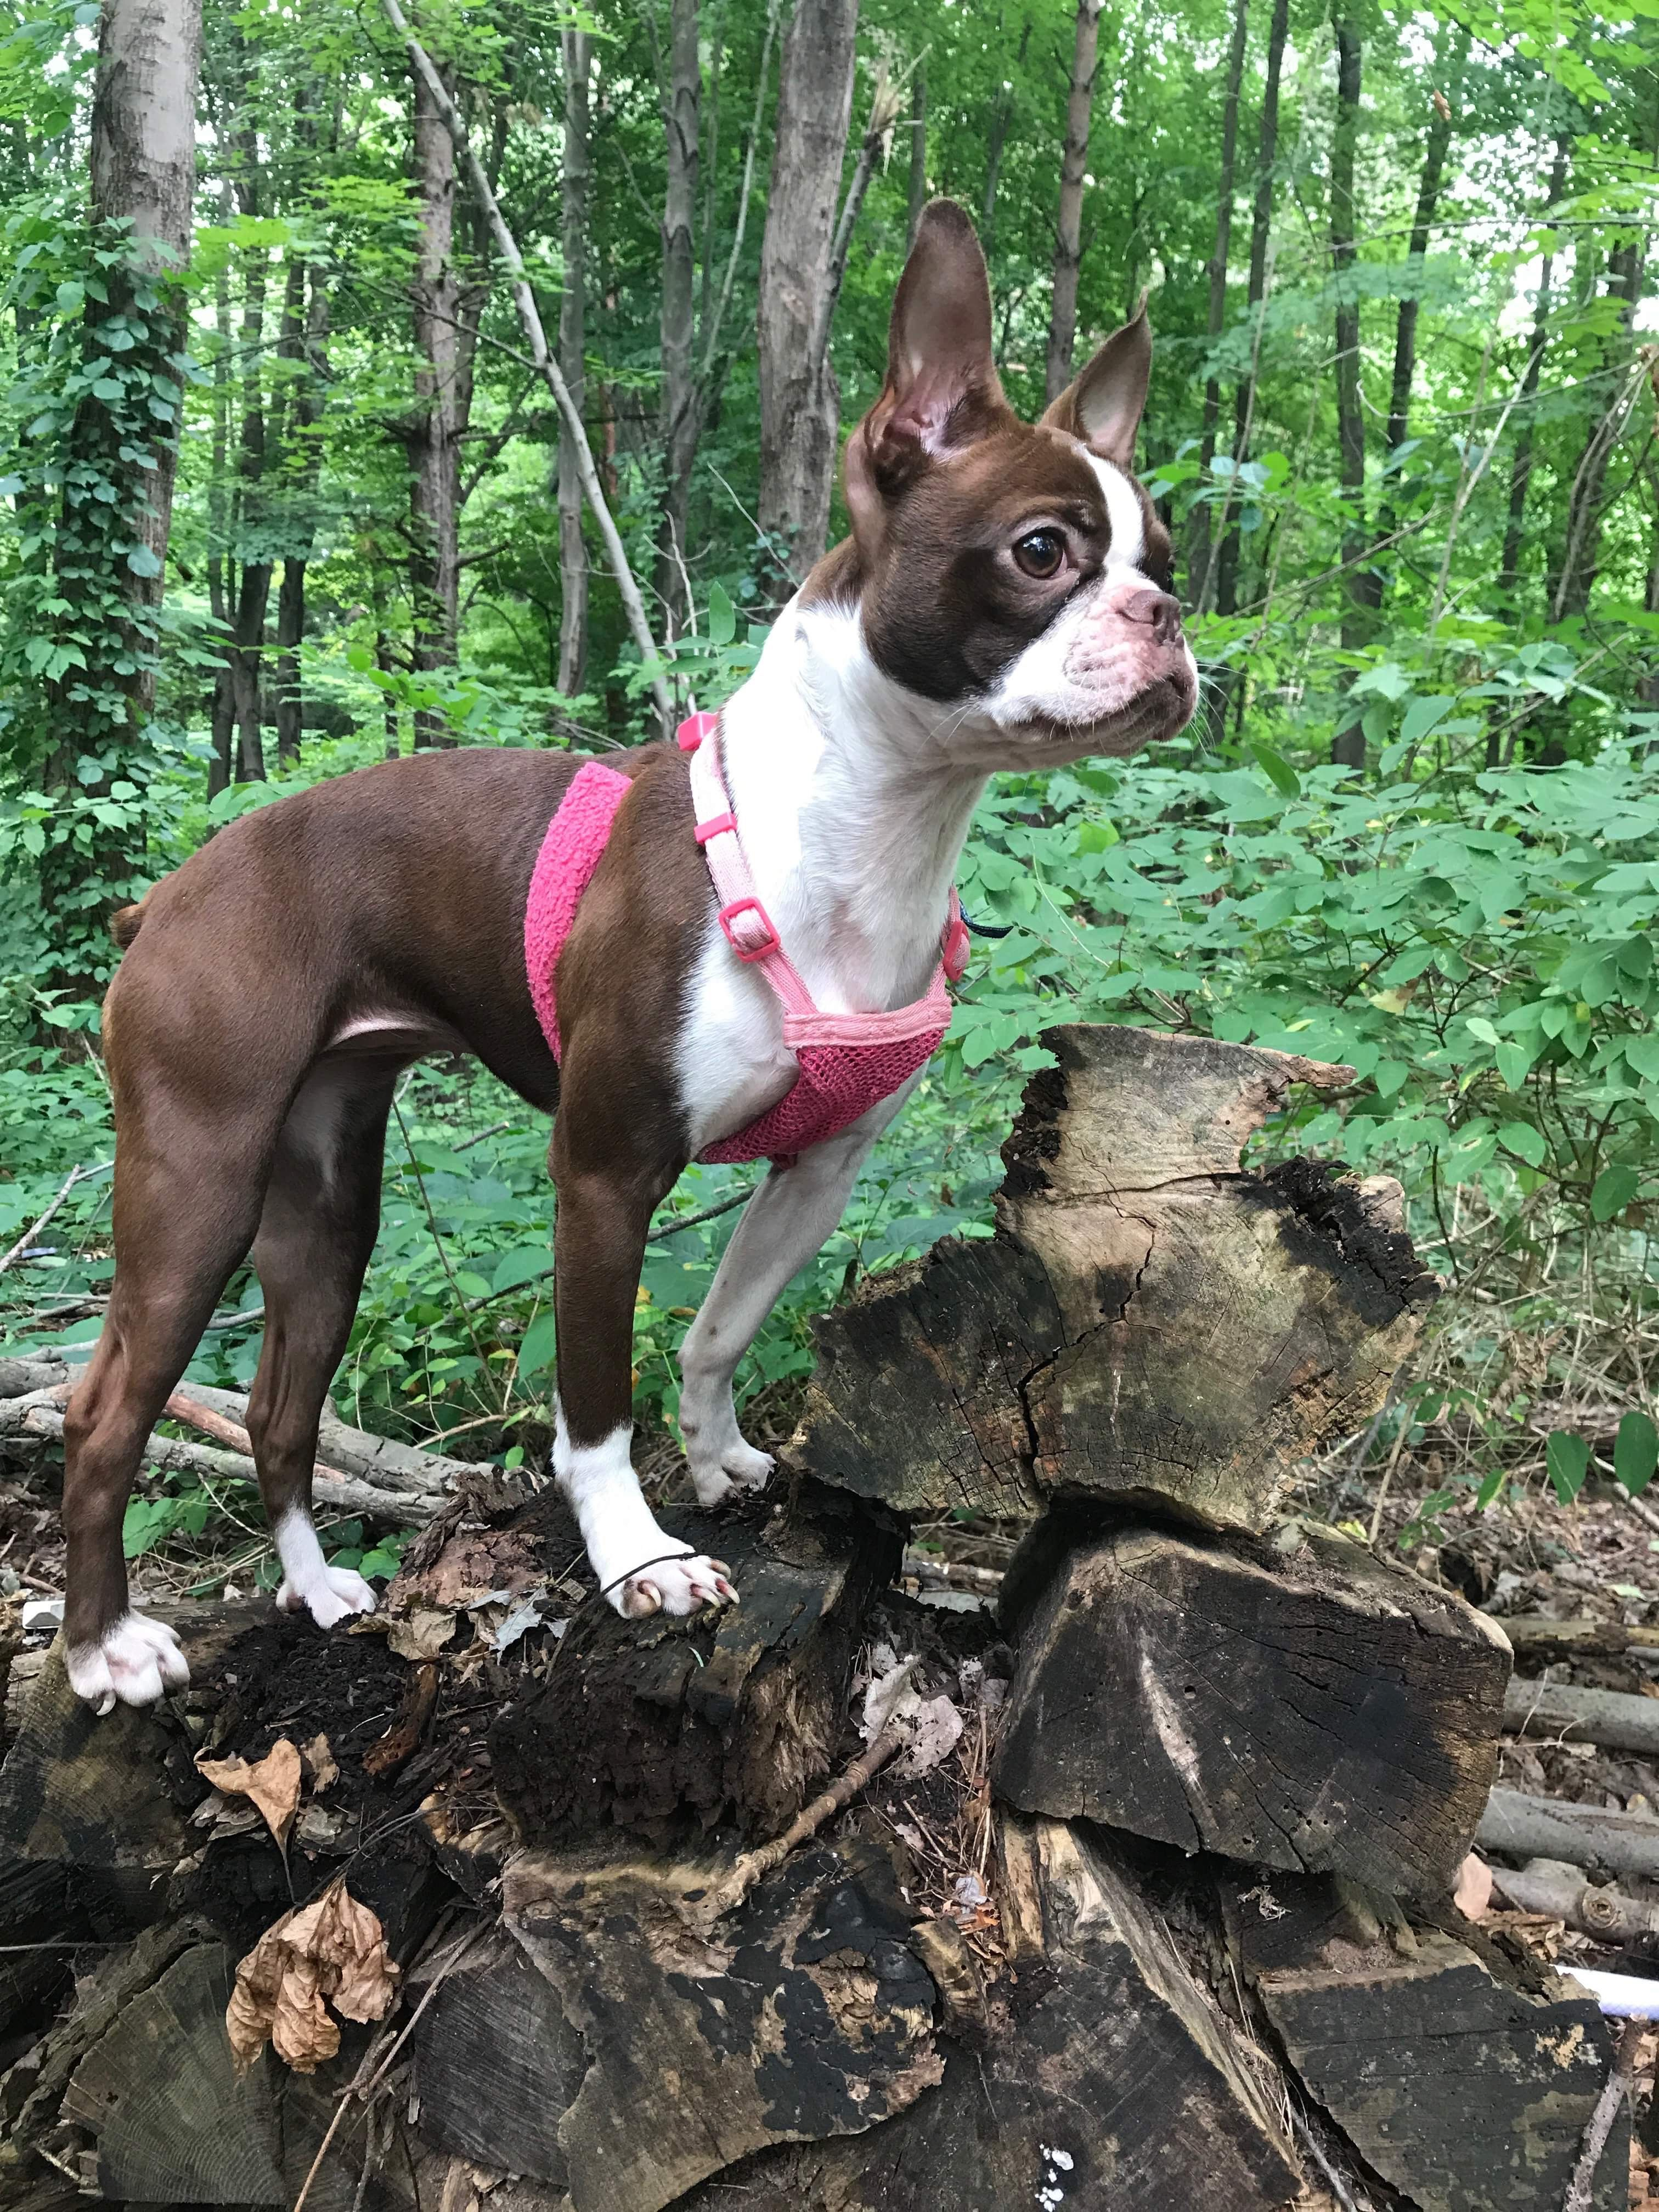 Adventure Dog, Ellie May in the Ohio woods. Boston